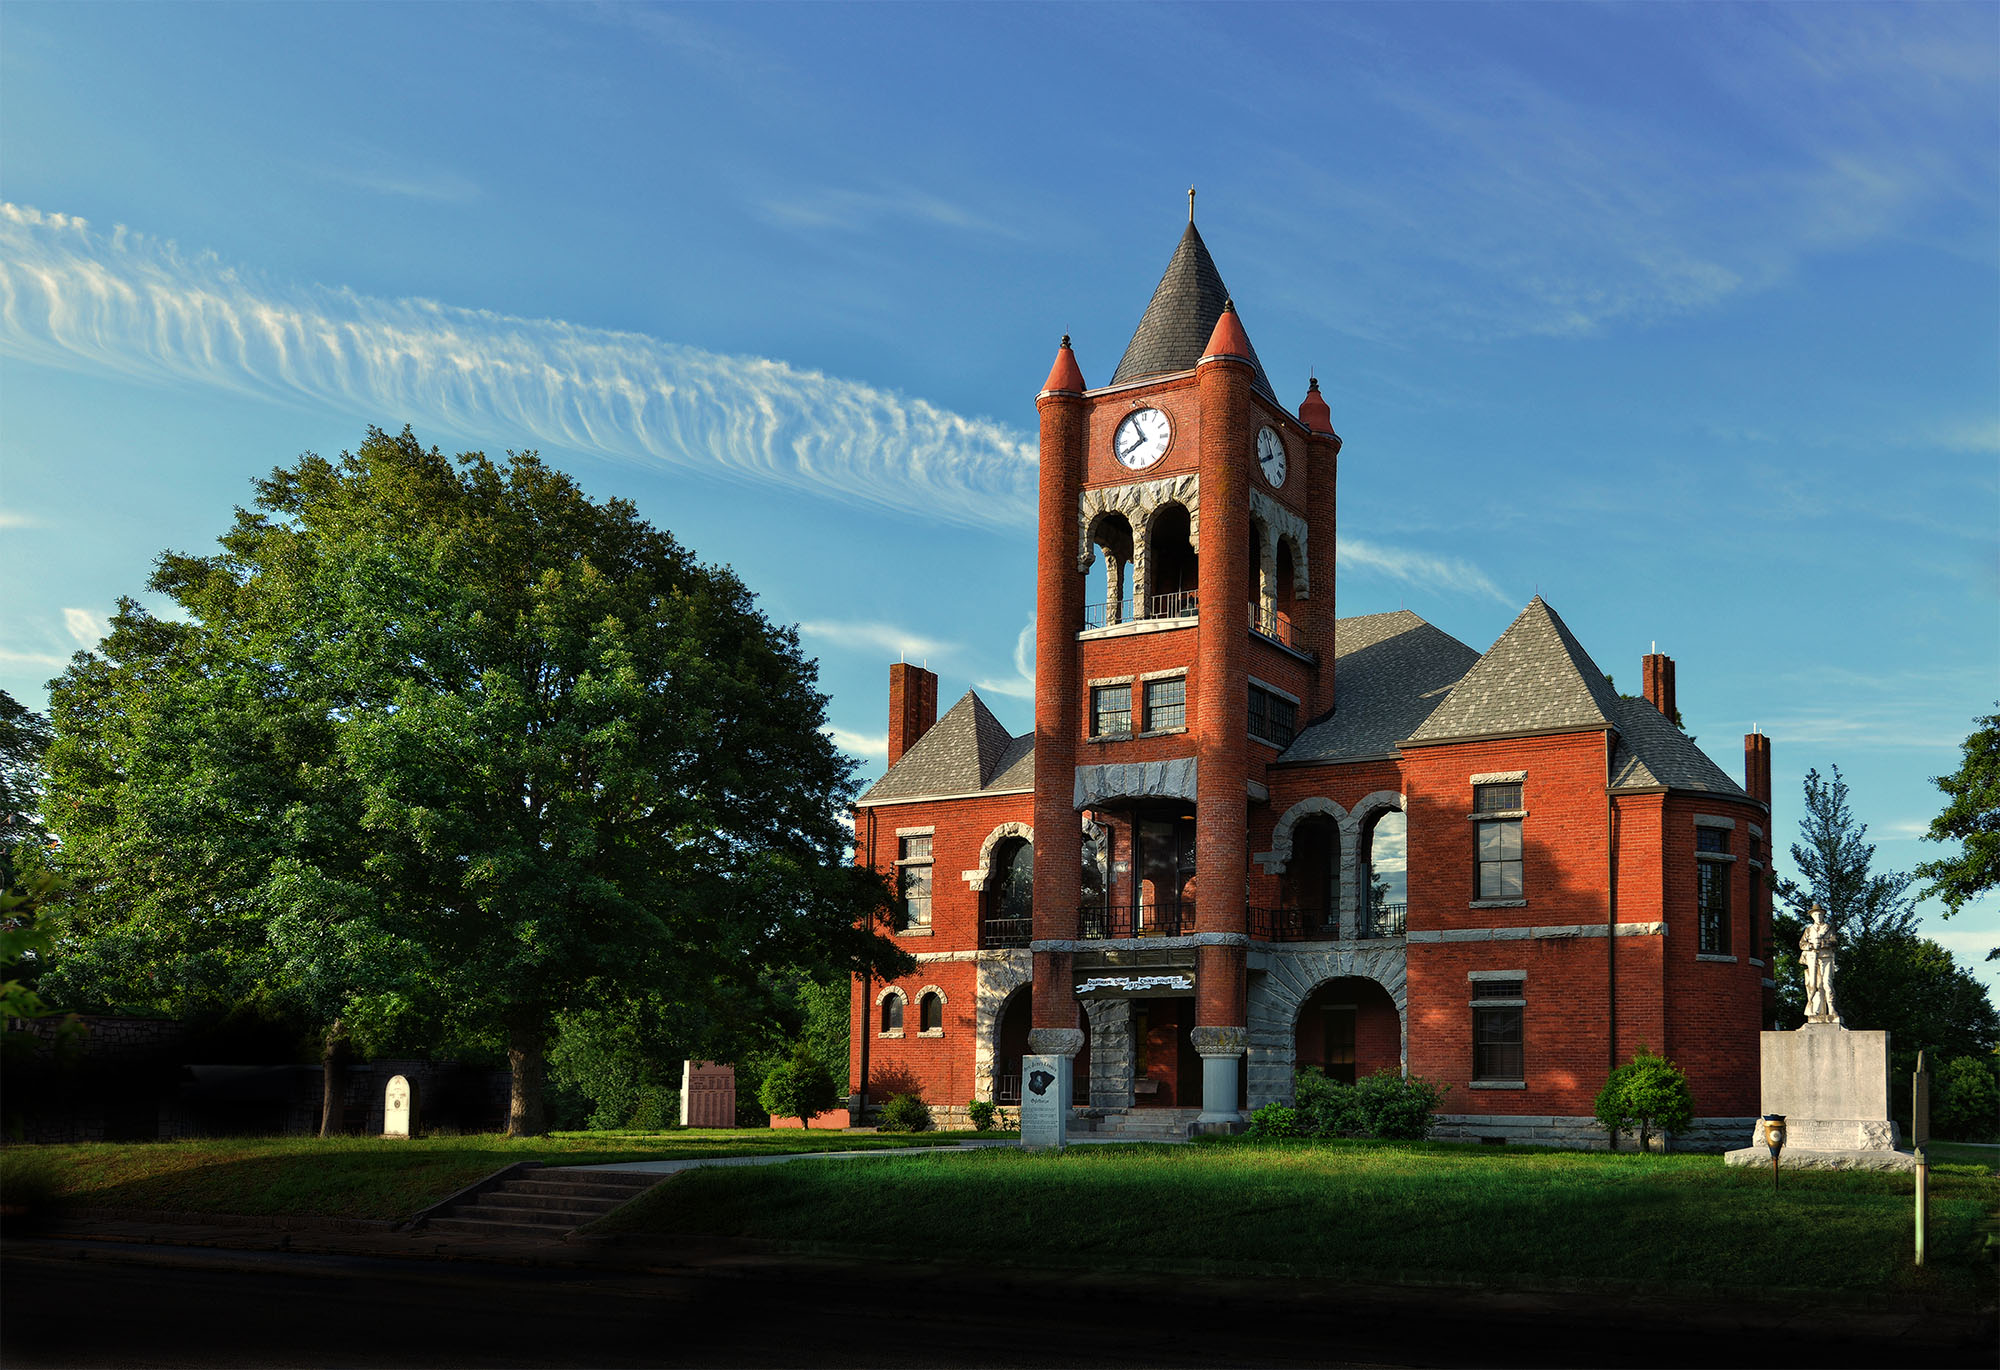 Oglethorpe Co Courthouse